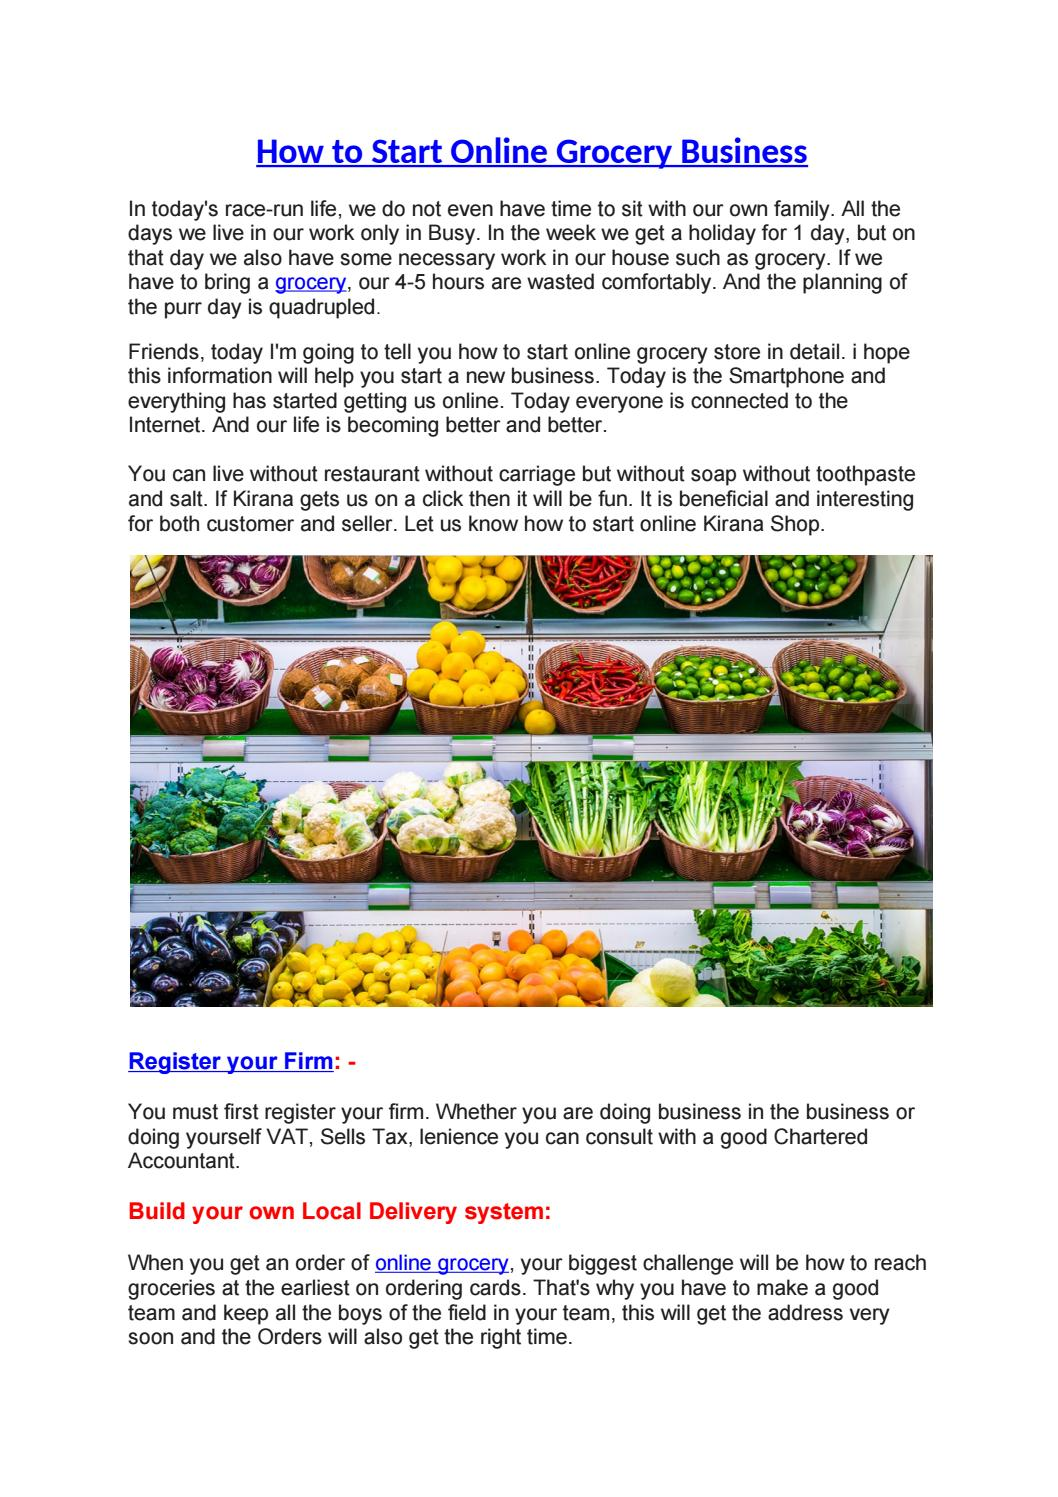 How to Start Online Grocery Business by aapkabazar2 - issuu